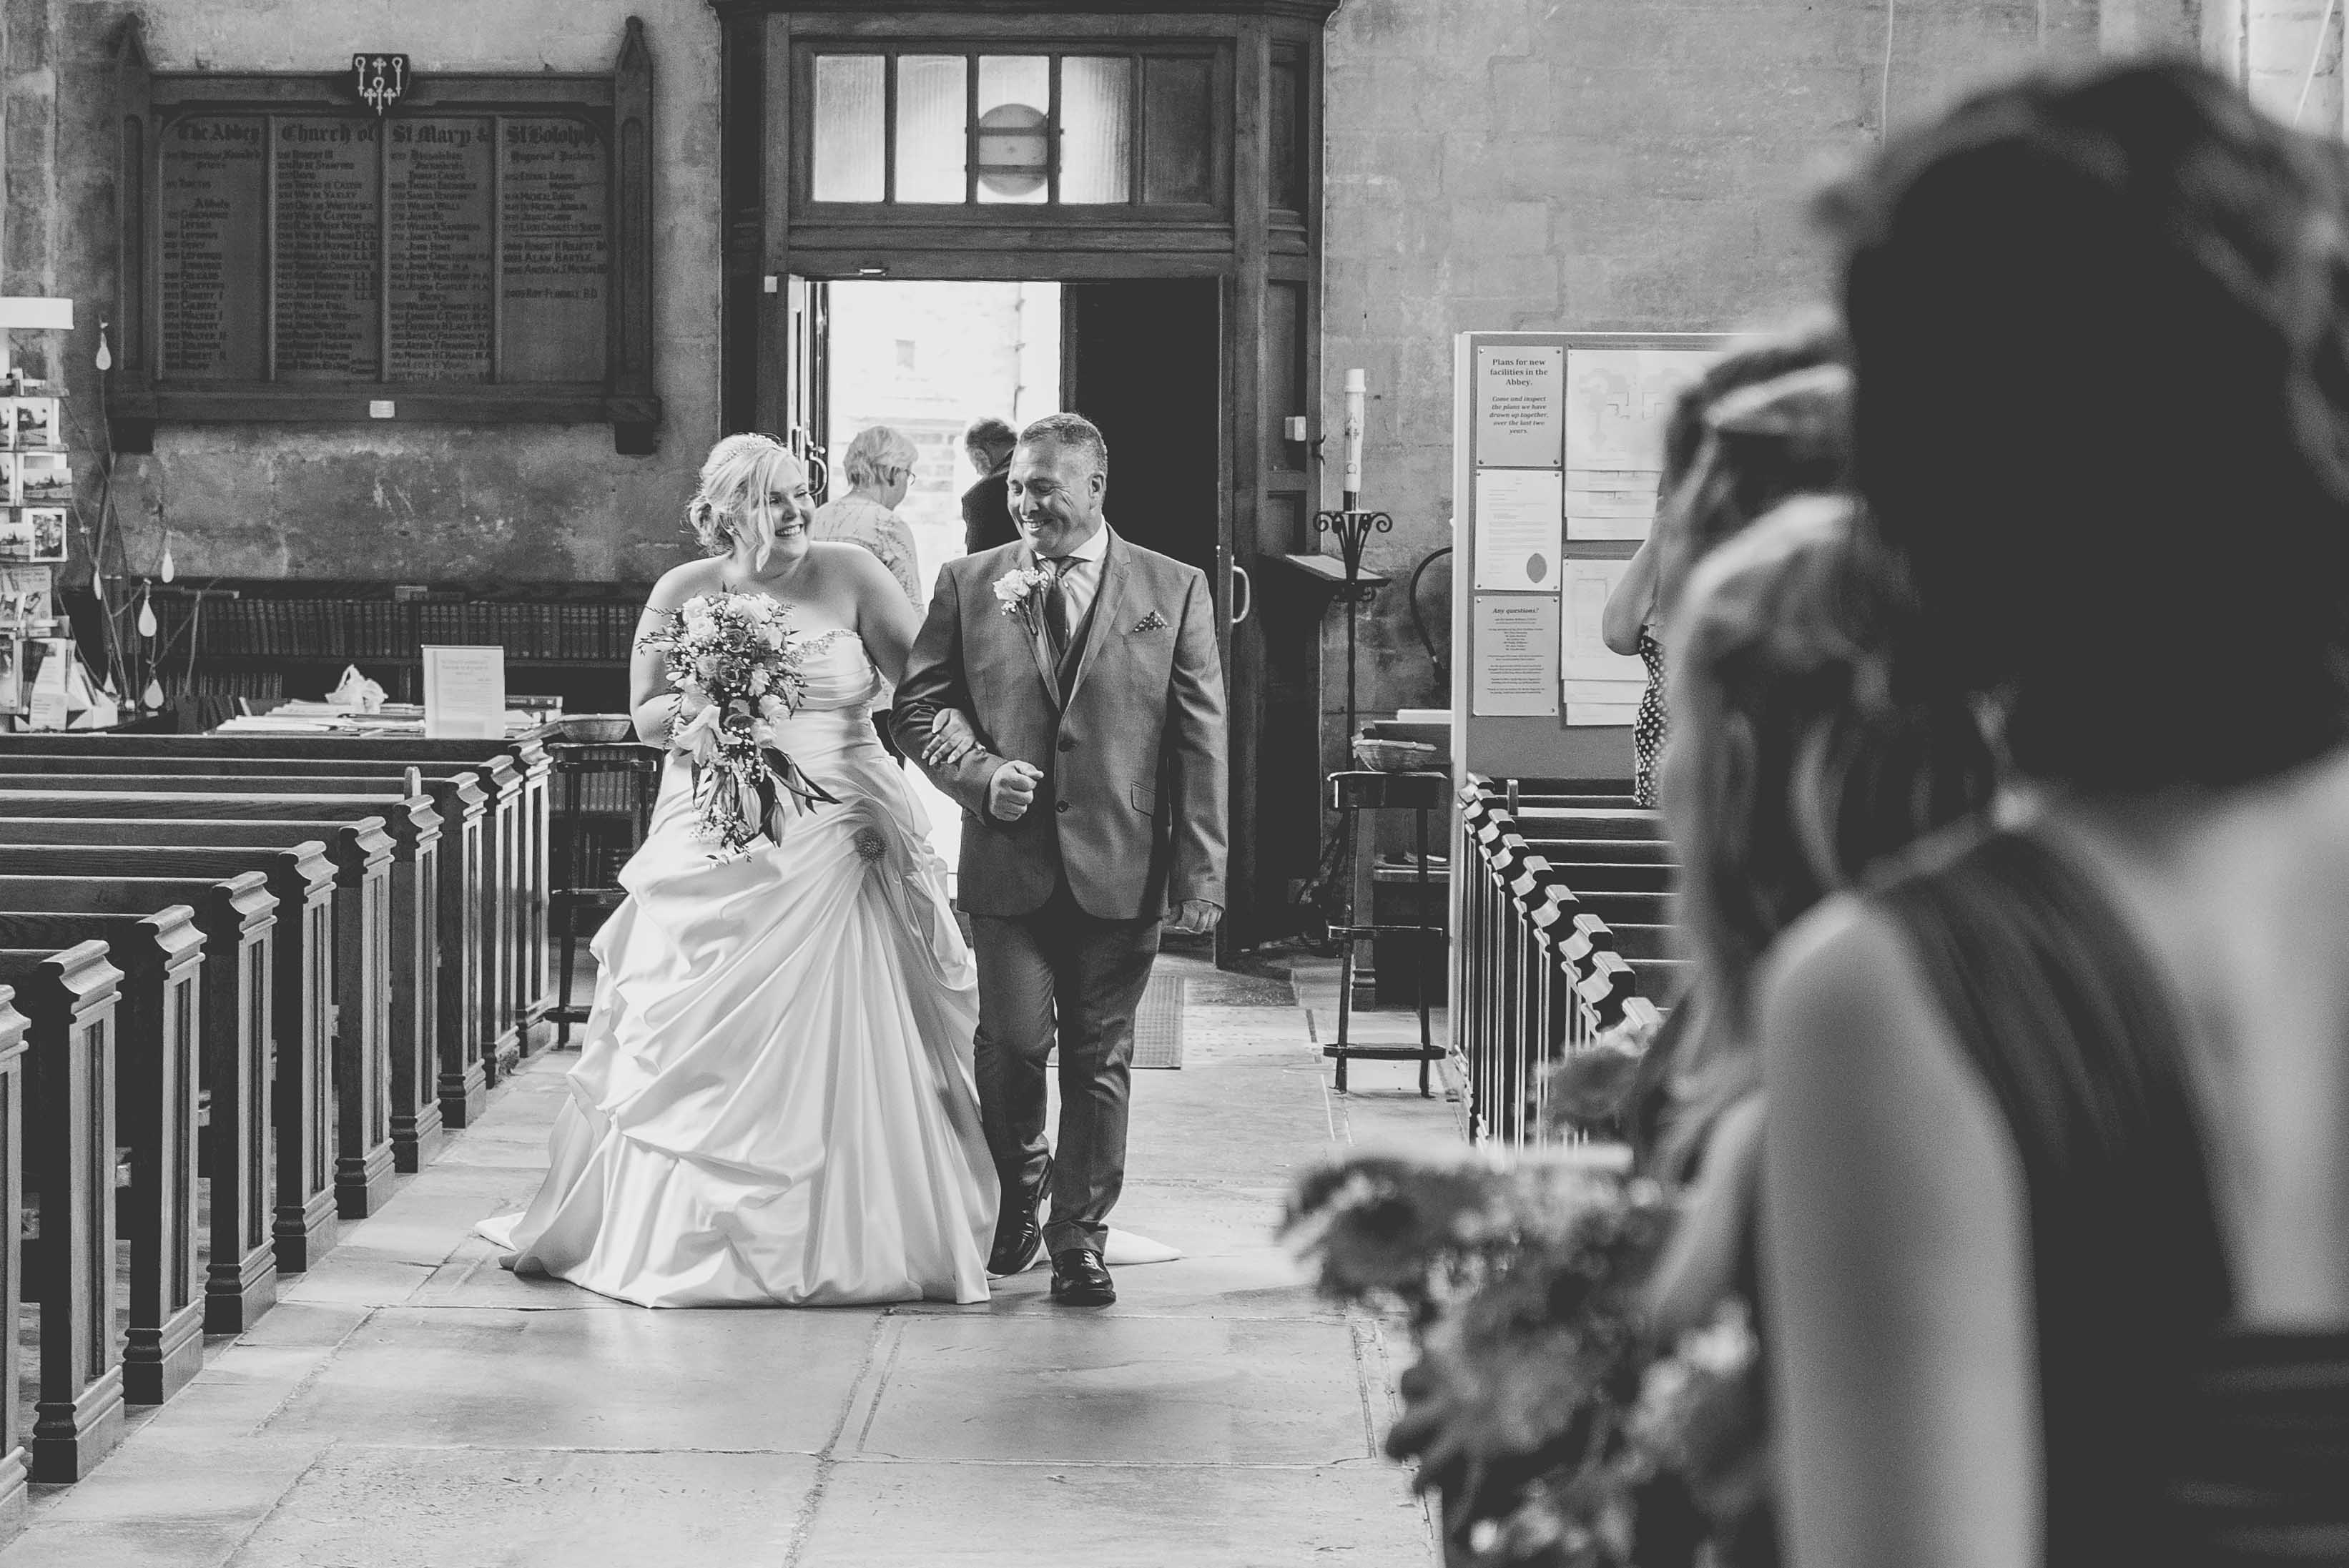 Thorney Abbey Wedding 26 09 2016 4